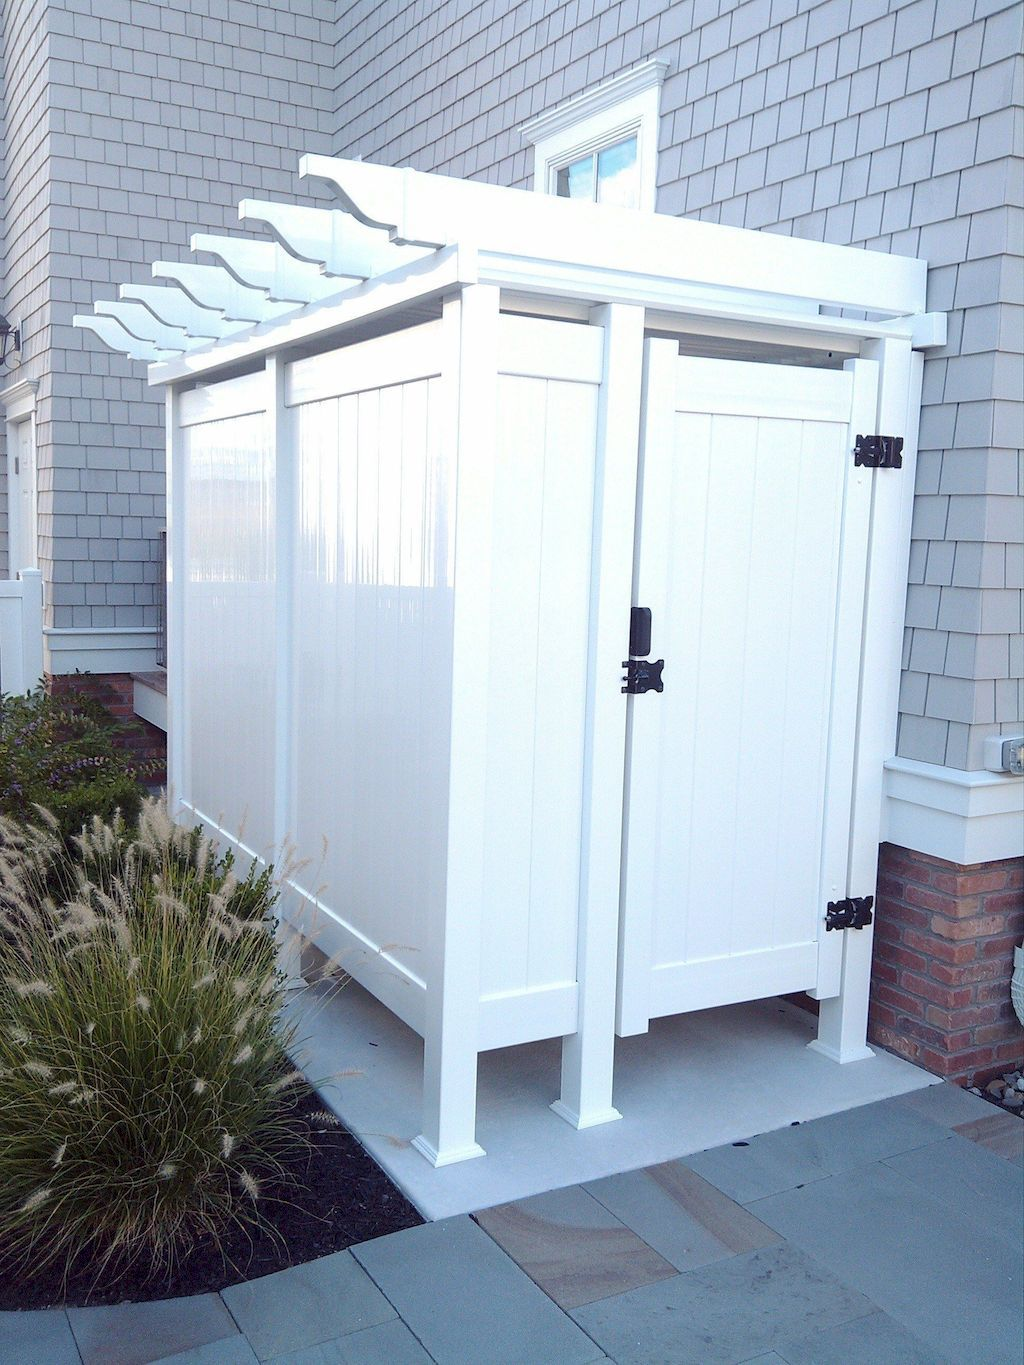 Outdoors Shower Concepts To Discover Outdoor Pool Bathroom Outdoor Bathrooms Outdoor Shower Enclosure